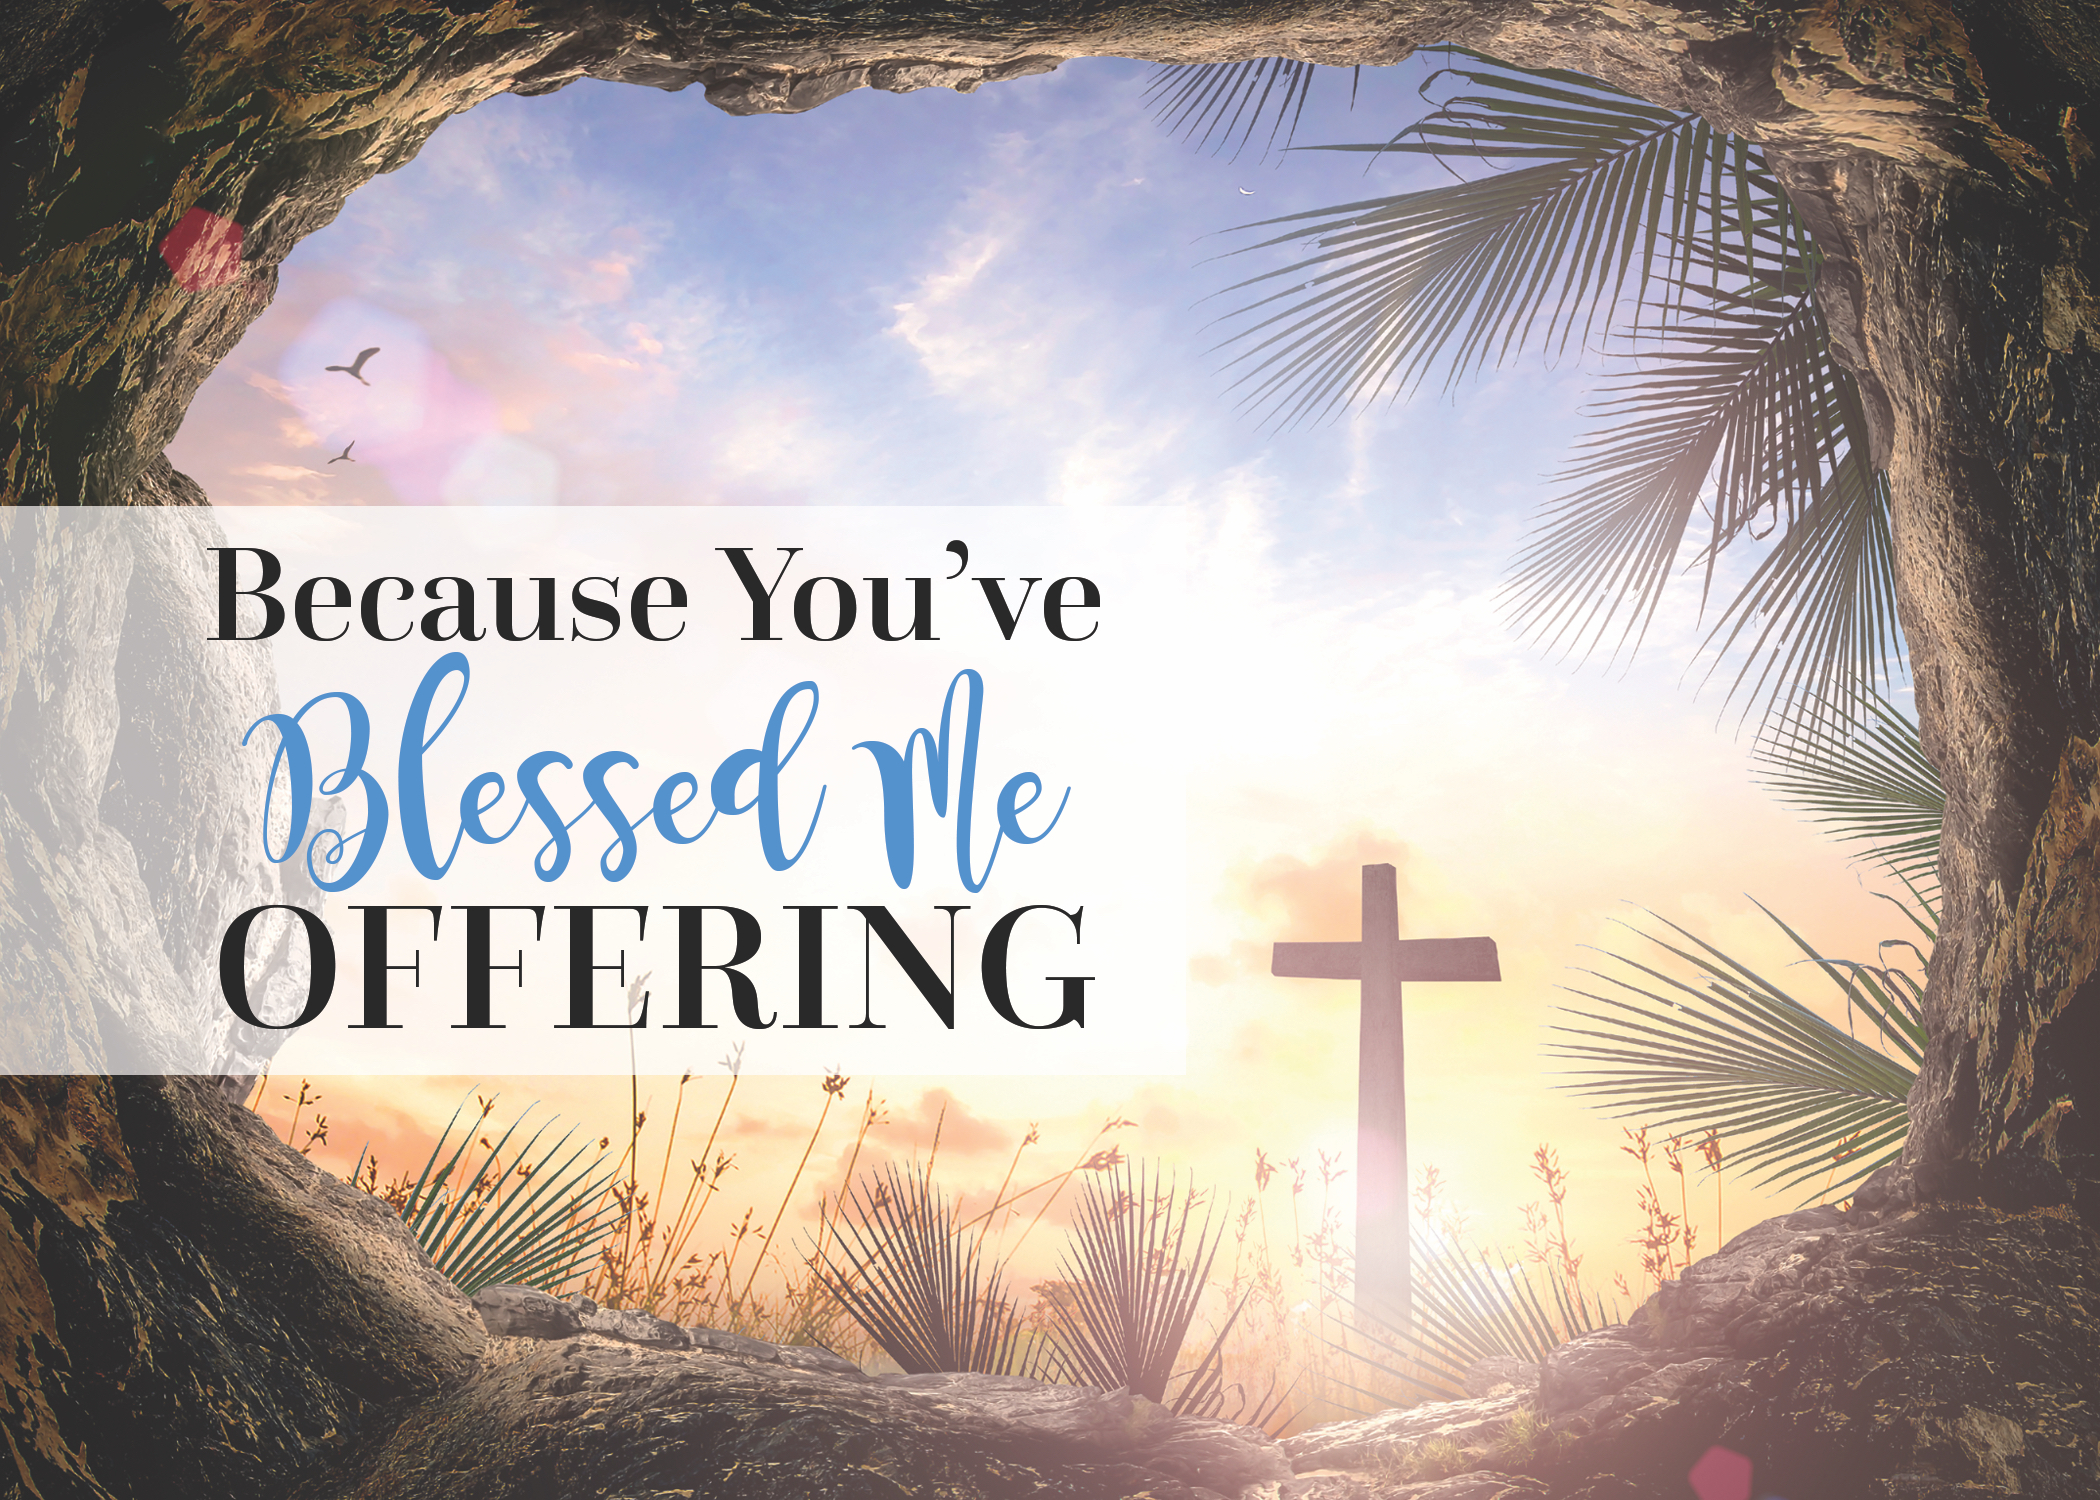 BecauseYou'veBlessedMe_OfferingGraphic copy.jpg